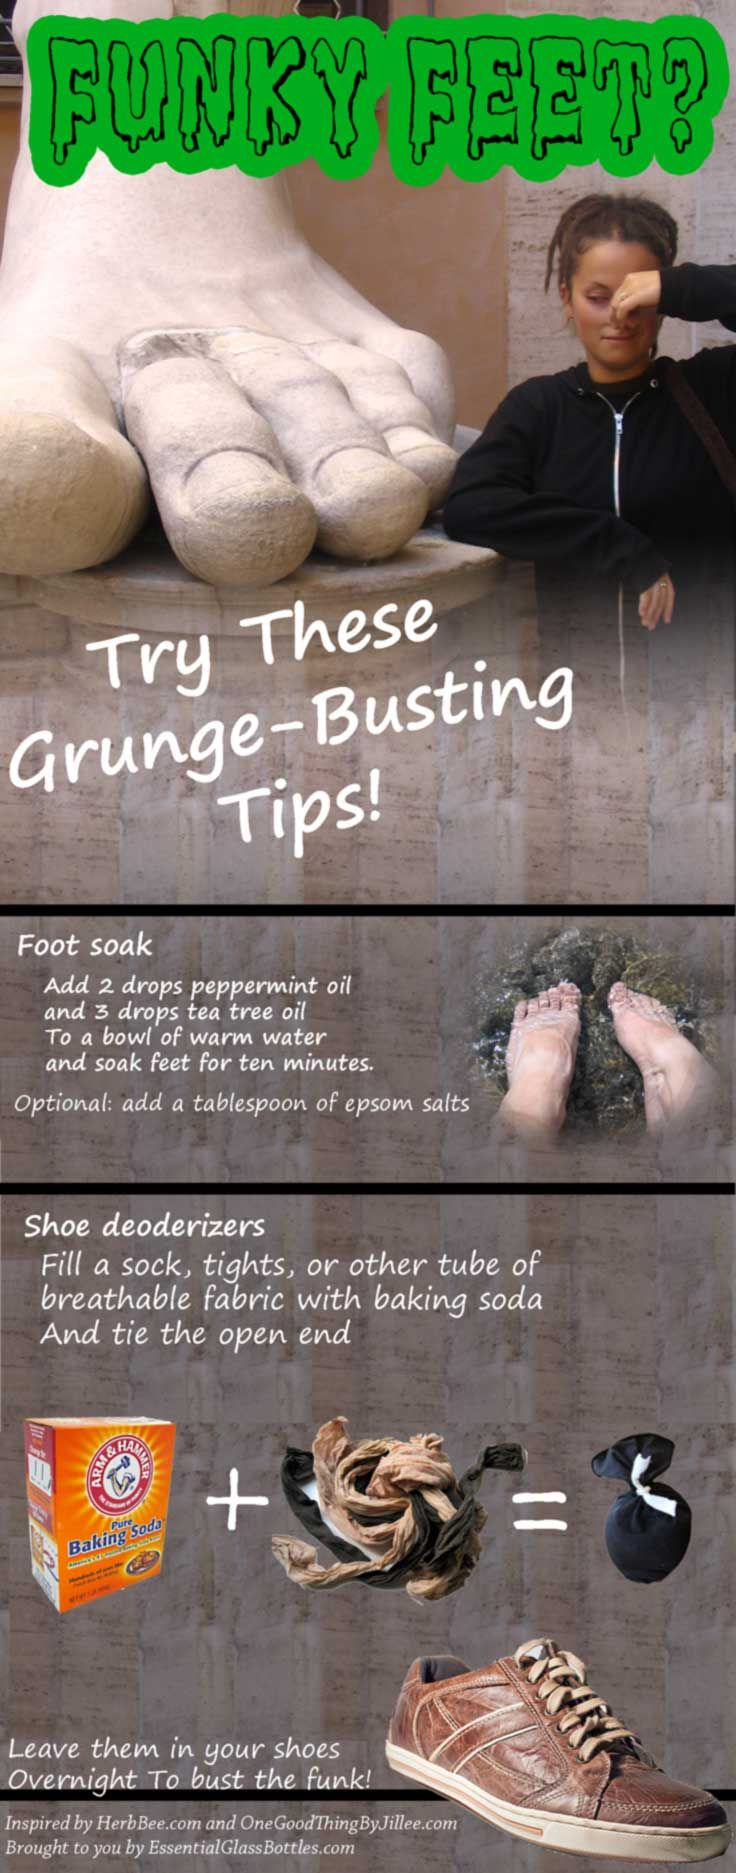 Fight food odor naturally! This easy recipe uses essential oils and a warm foot bath to neutralize funky feet.   It also includes a great DIY shoe stink killer that uses baking soda to get rid of smelly foot odors inside your shoes.  source:   http://essentialglassbottles.com/blogs/bottle-blog/51466629-fight-foot-funk  Inspired by http://www.herbbee.com/essential-oil-recipes/foot-baths/  and   http://www.onegoodthingbyjillee.com/2013/03/home-remedies-for-stinky-shoes-and-feet.html